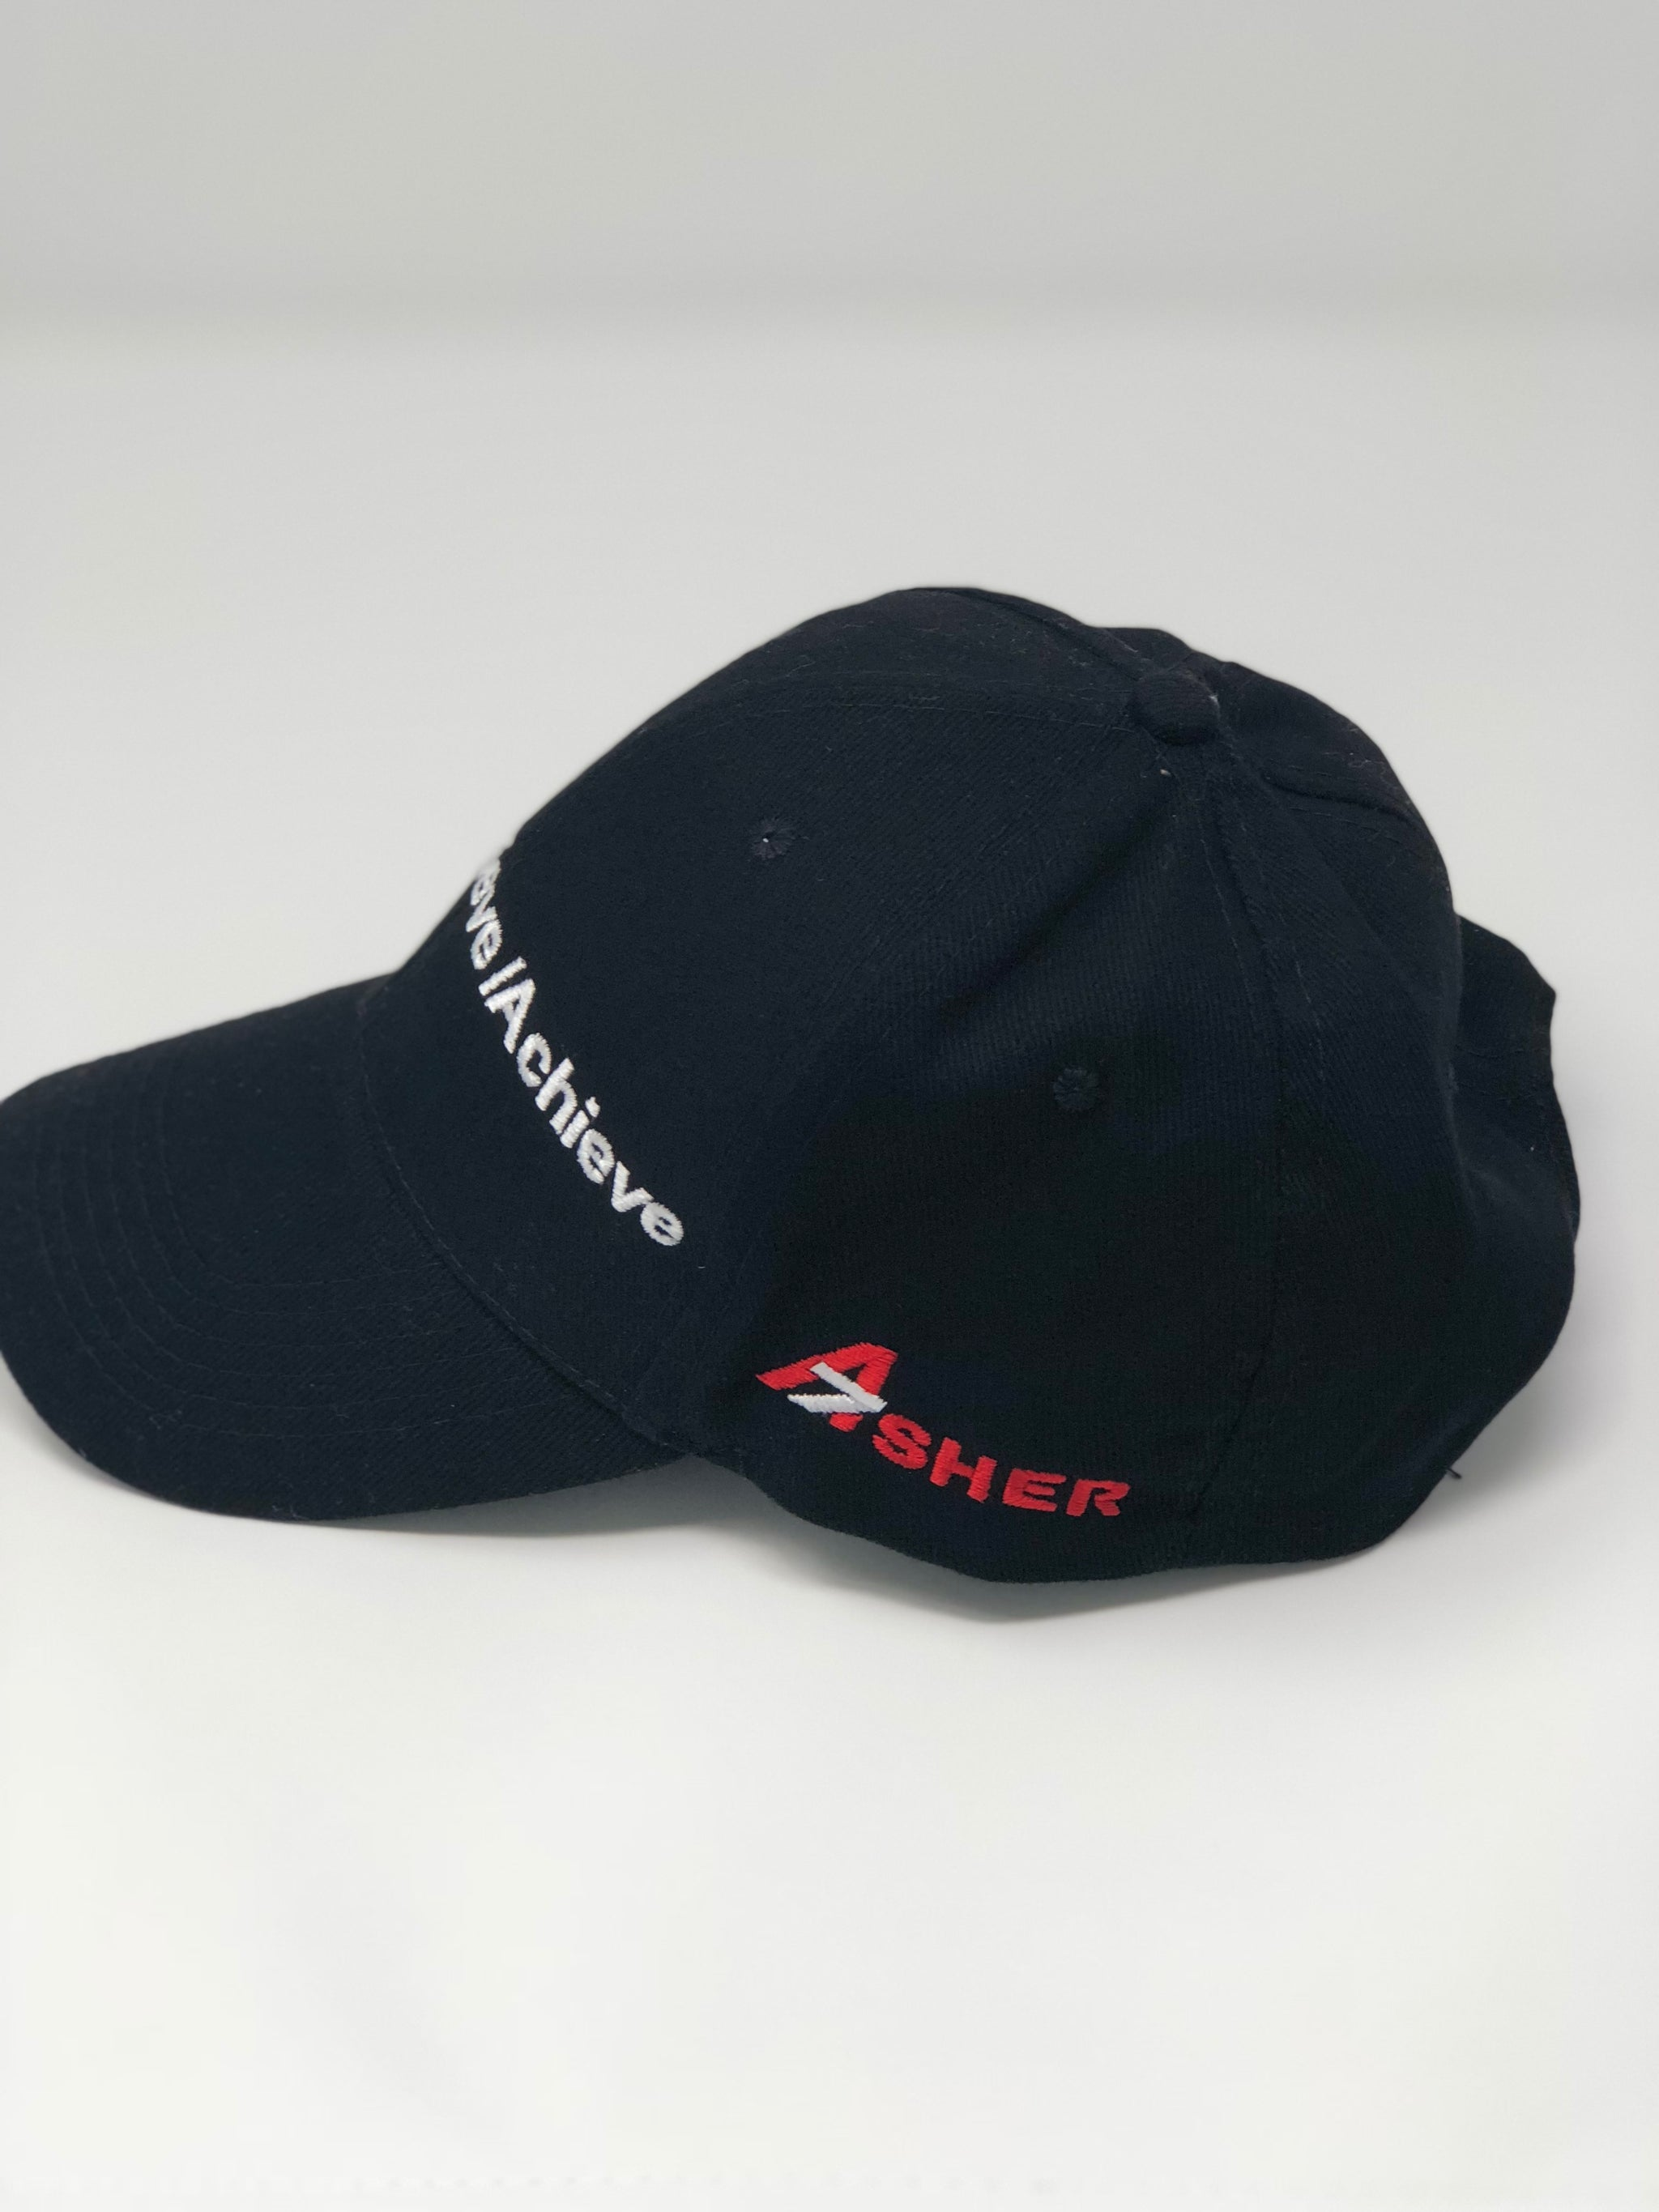 DREAM | BELIEVE | ACHIEVE Baseball cap A7 logo right profile image